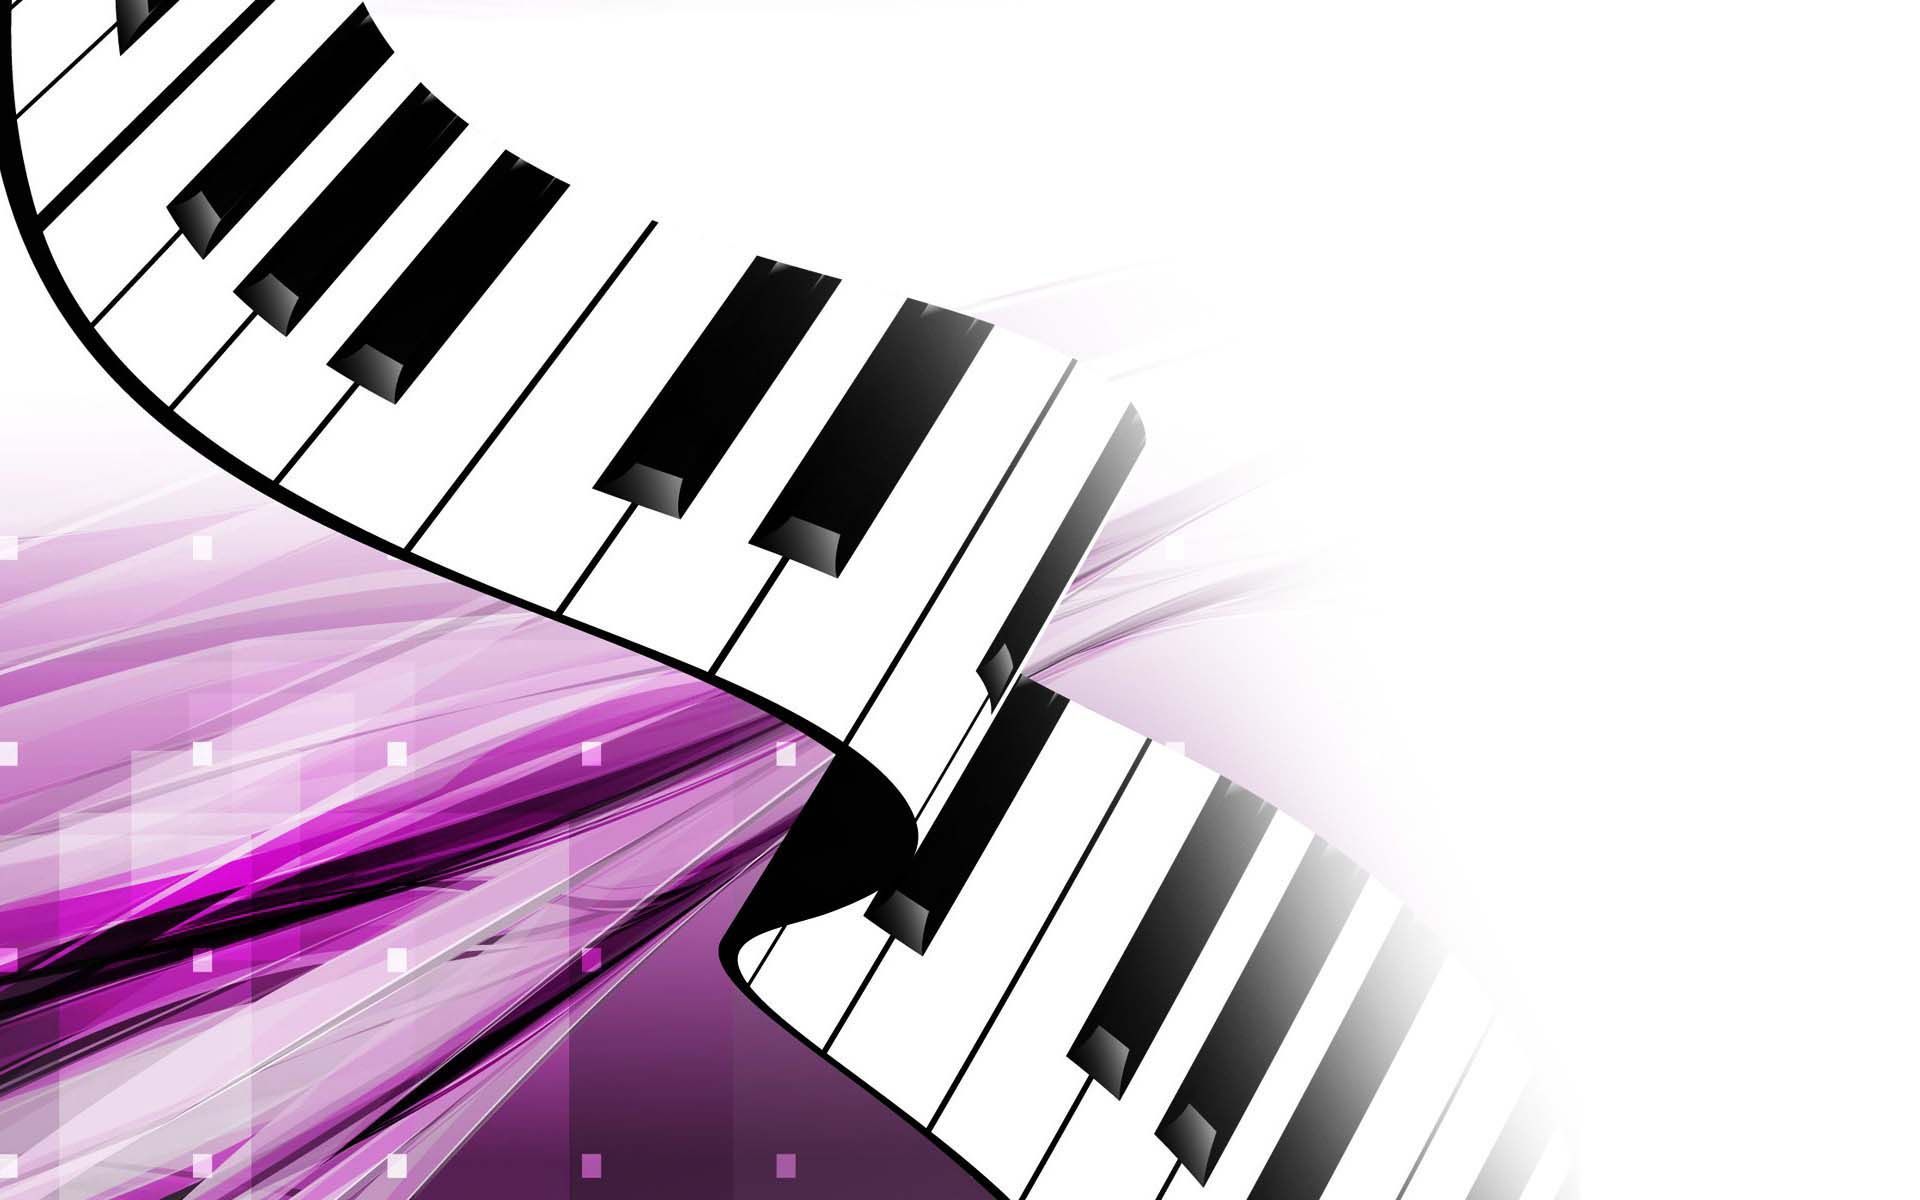 Cool piano graphics clipart best - Cool piano backgrounds ...